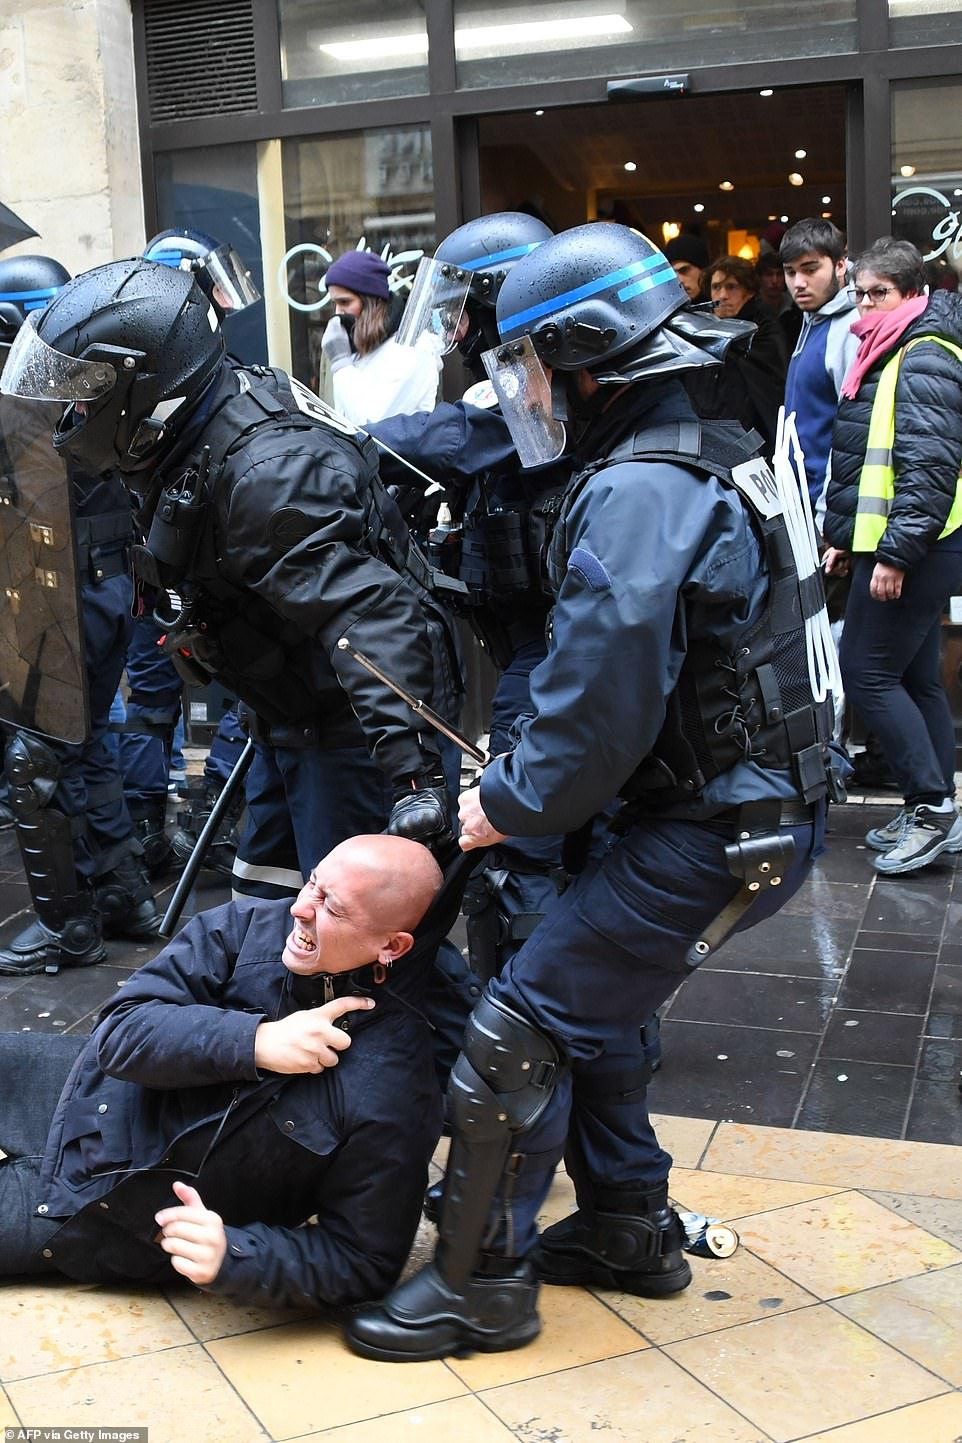 French anti-riot policemen detain a man during the demonstrations that took place in Paris today